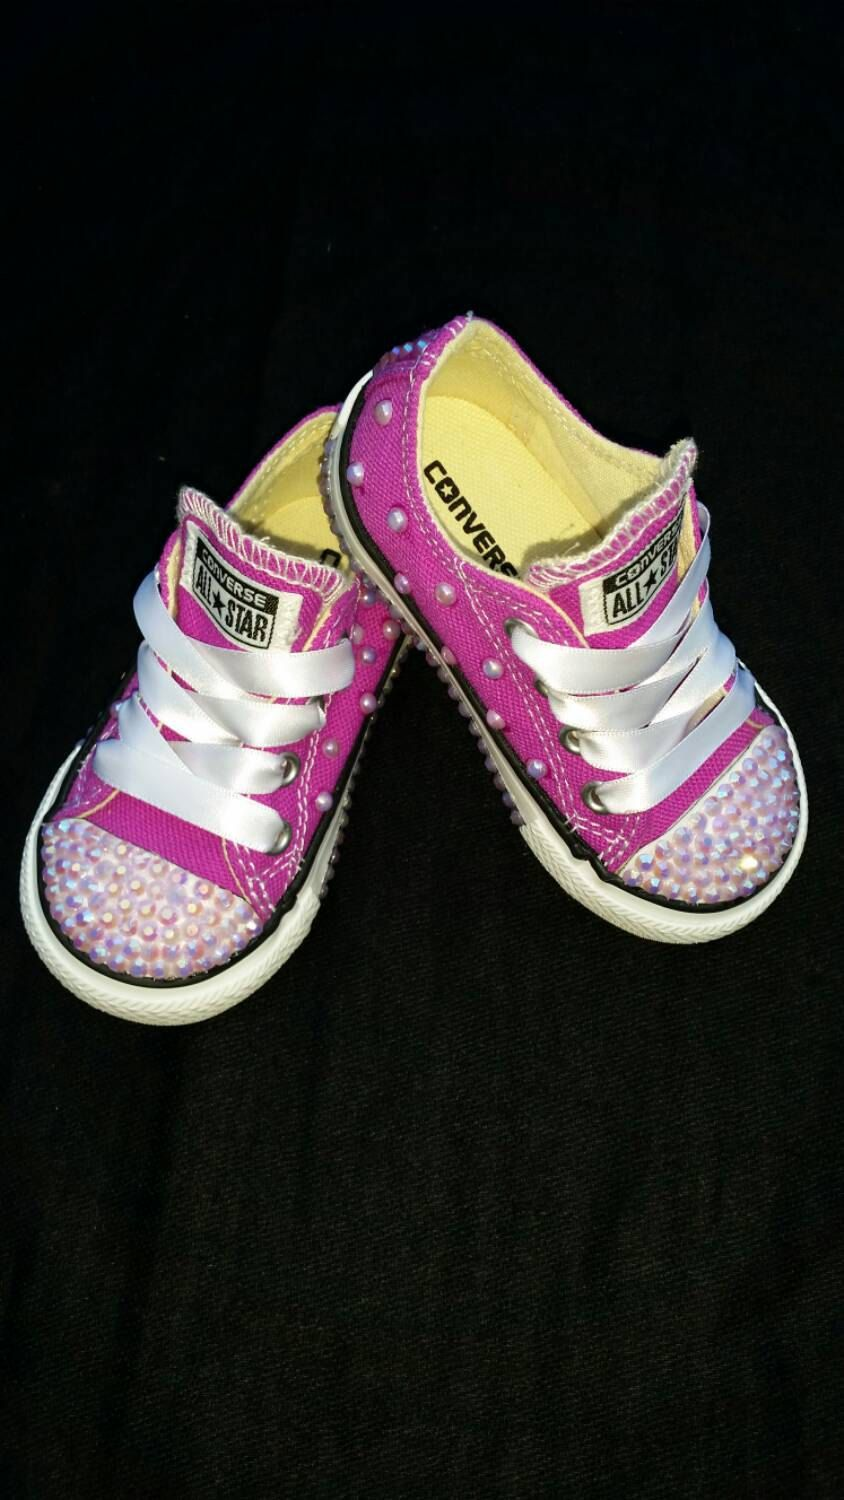 9fdc880fa587 Size 5C- Studded Low Top All Star Converse- Purple- Plum-Pearls- Crystal  Studded- Kids- Toddler- Girls- Ready to ship by DivineKidz on Etsy